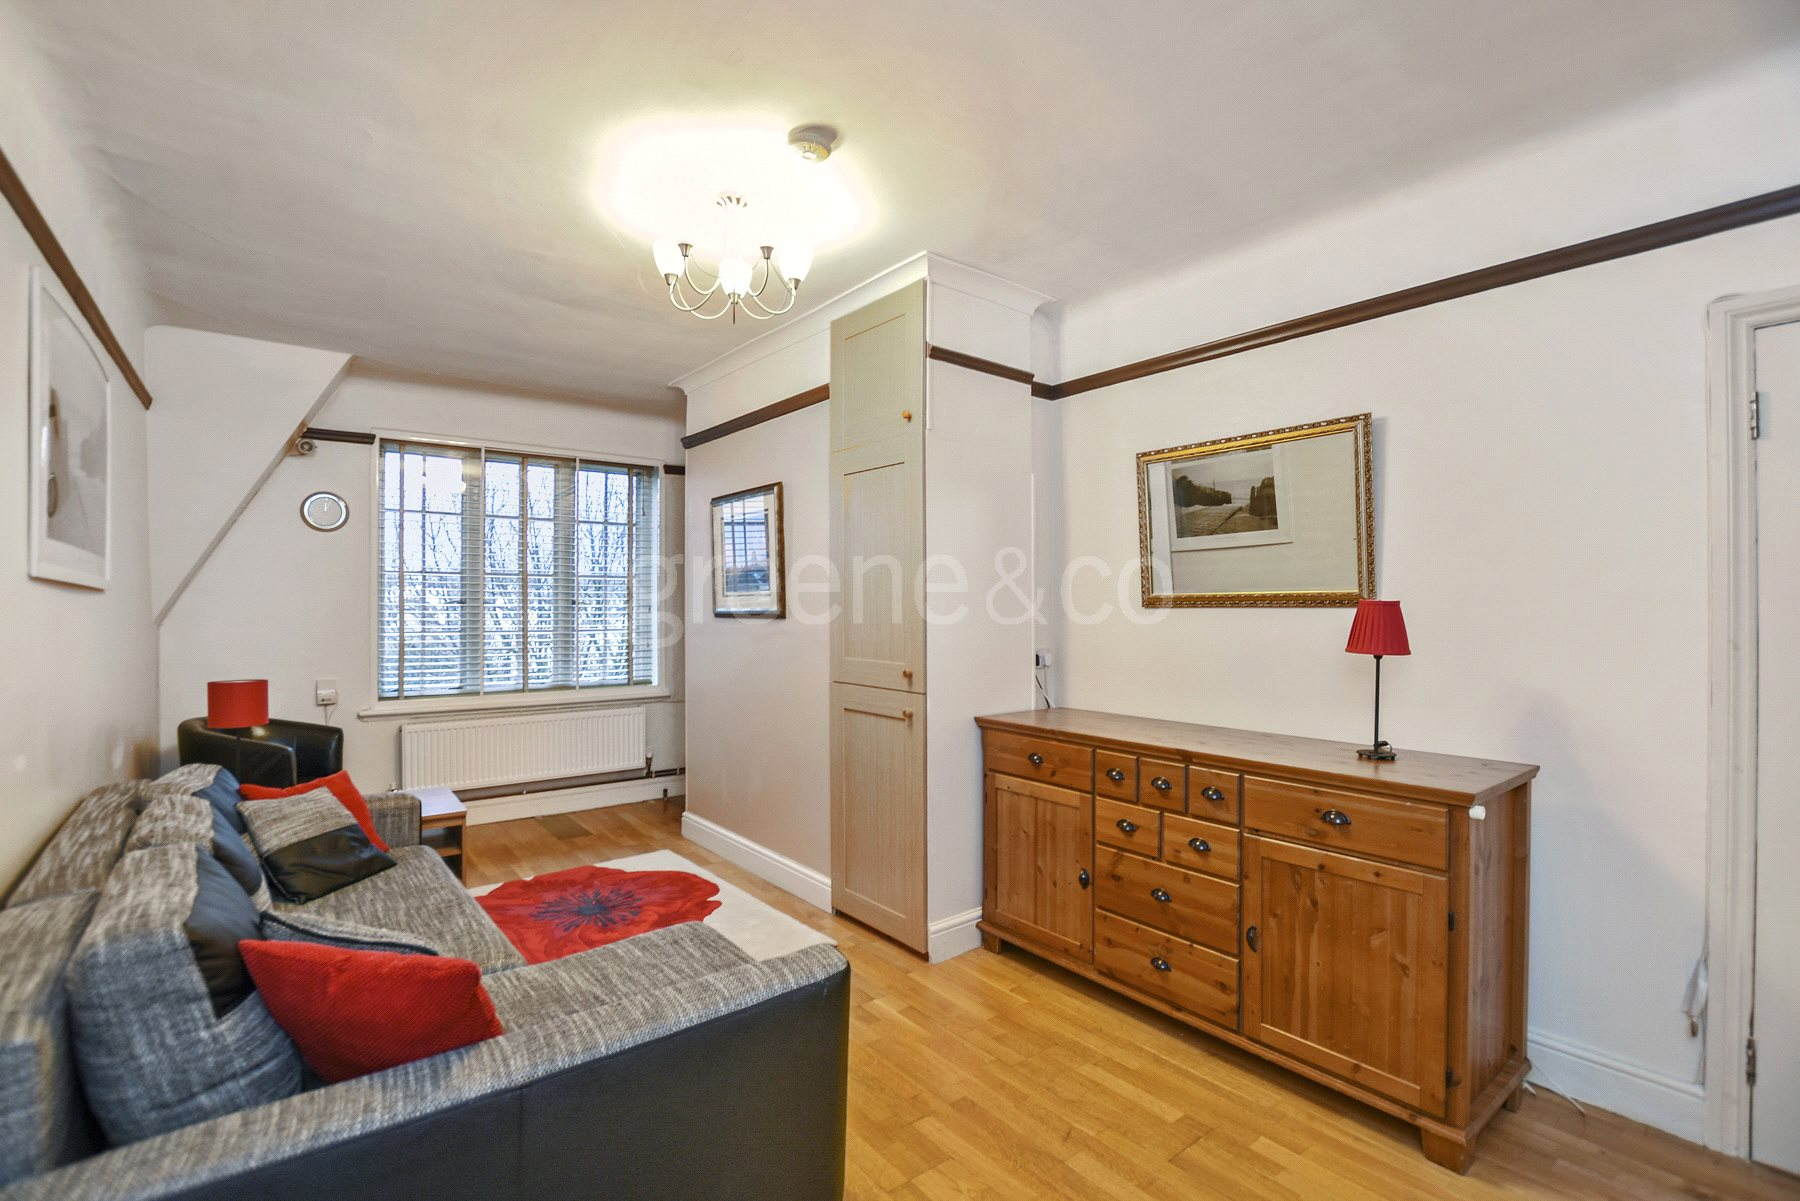 2 Bedrooms Flat for sale in Hillsborough Court, Mortimer Crescent, London, NW6